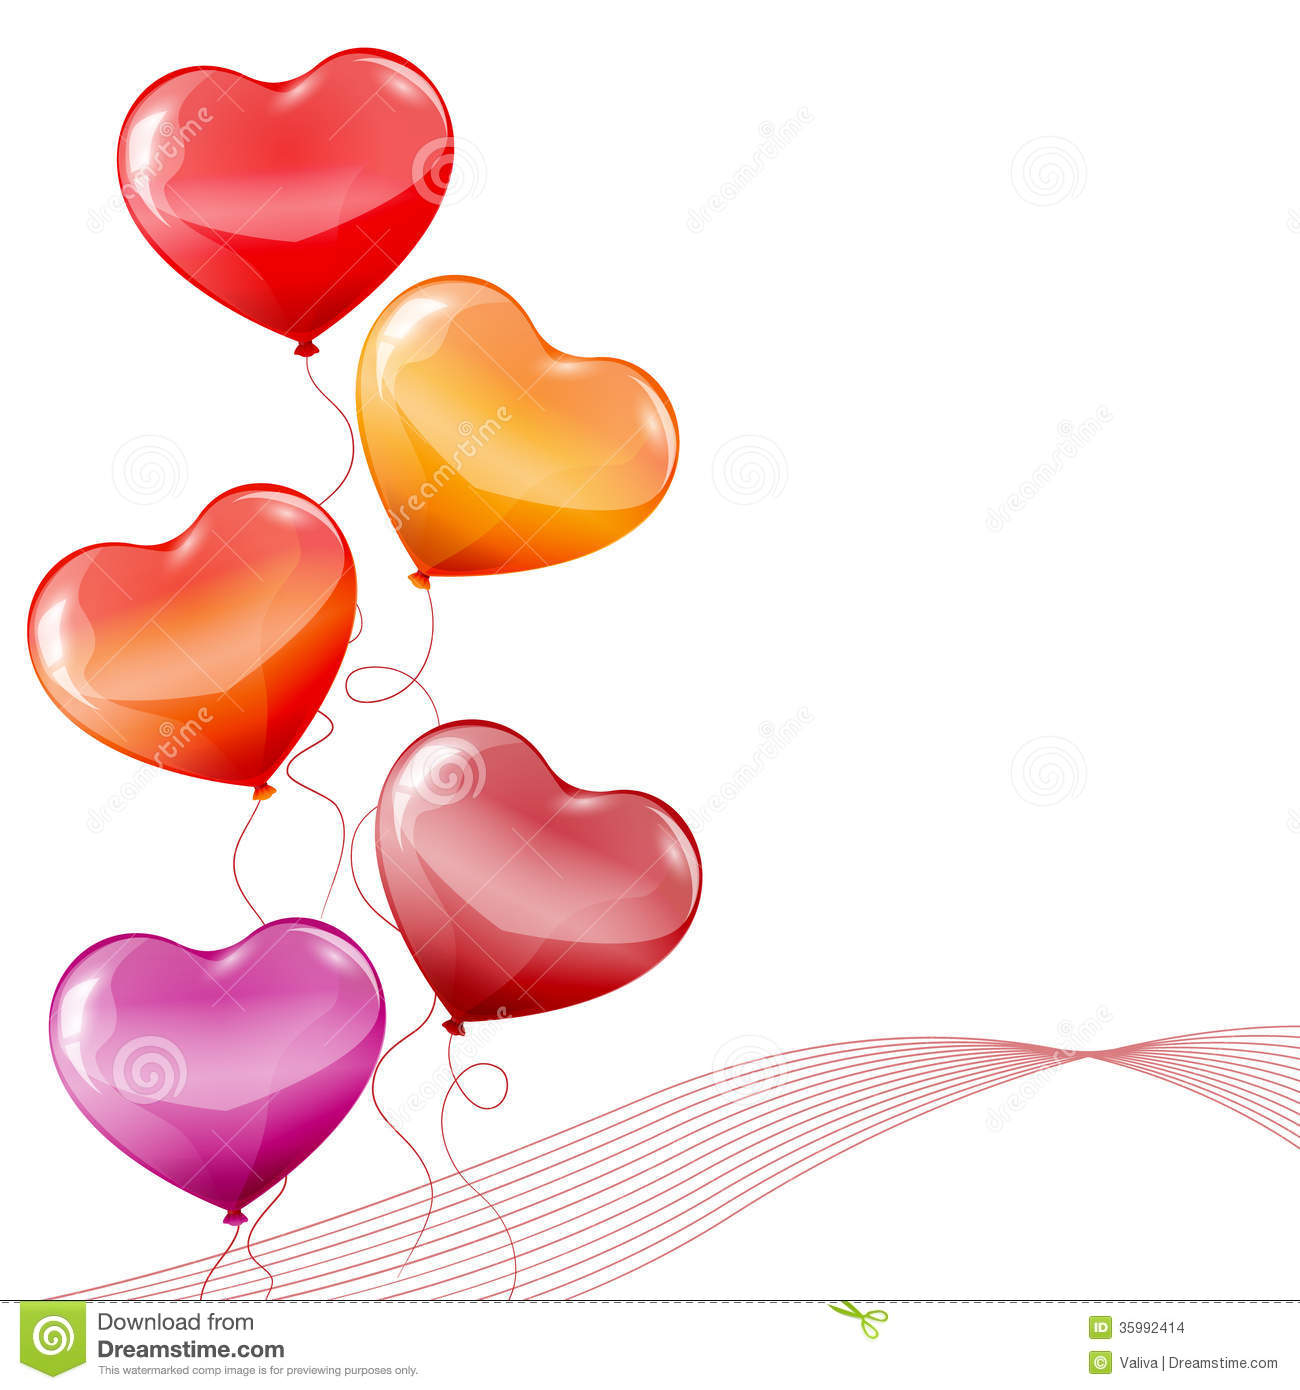 Colorful Heart Shaped Balloons Stock Images - Image: 35992414